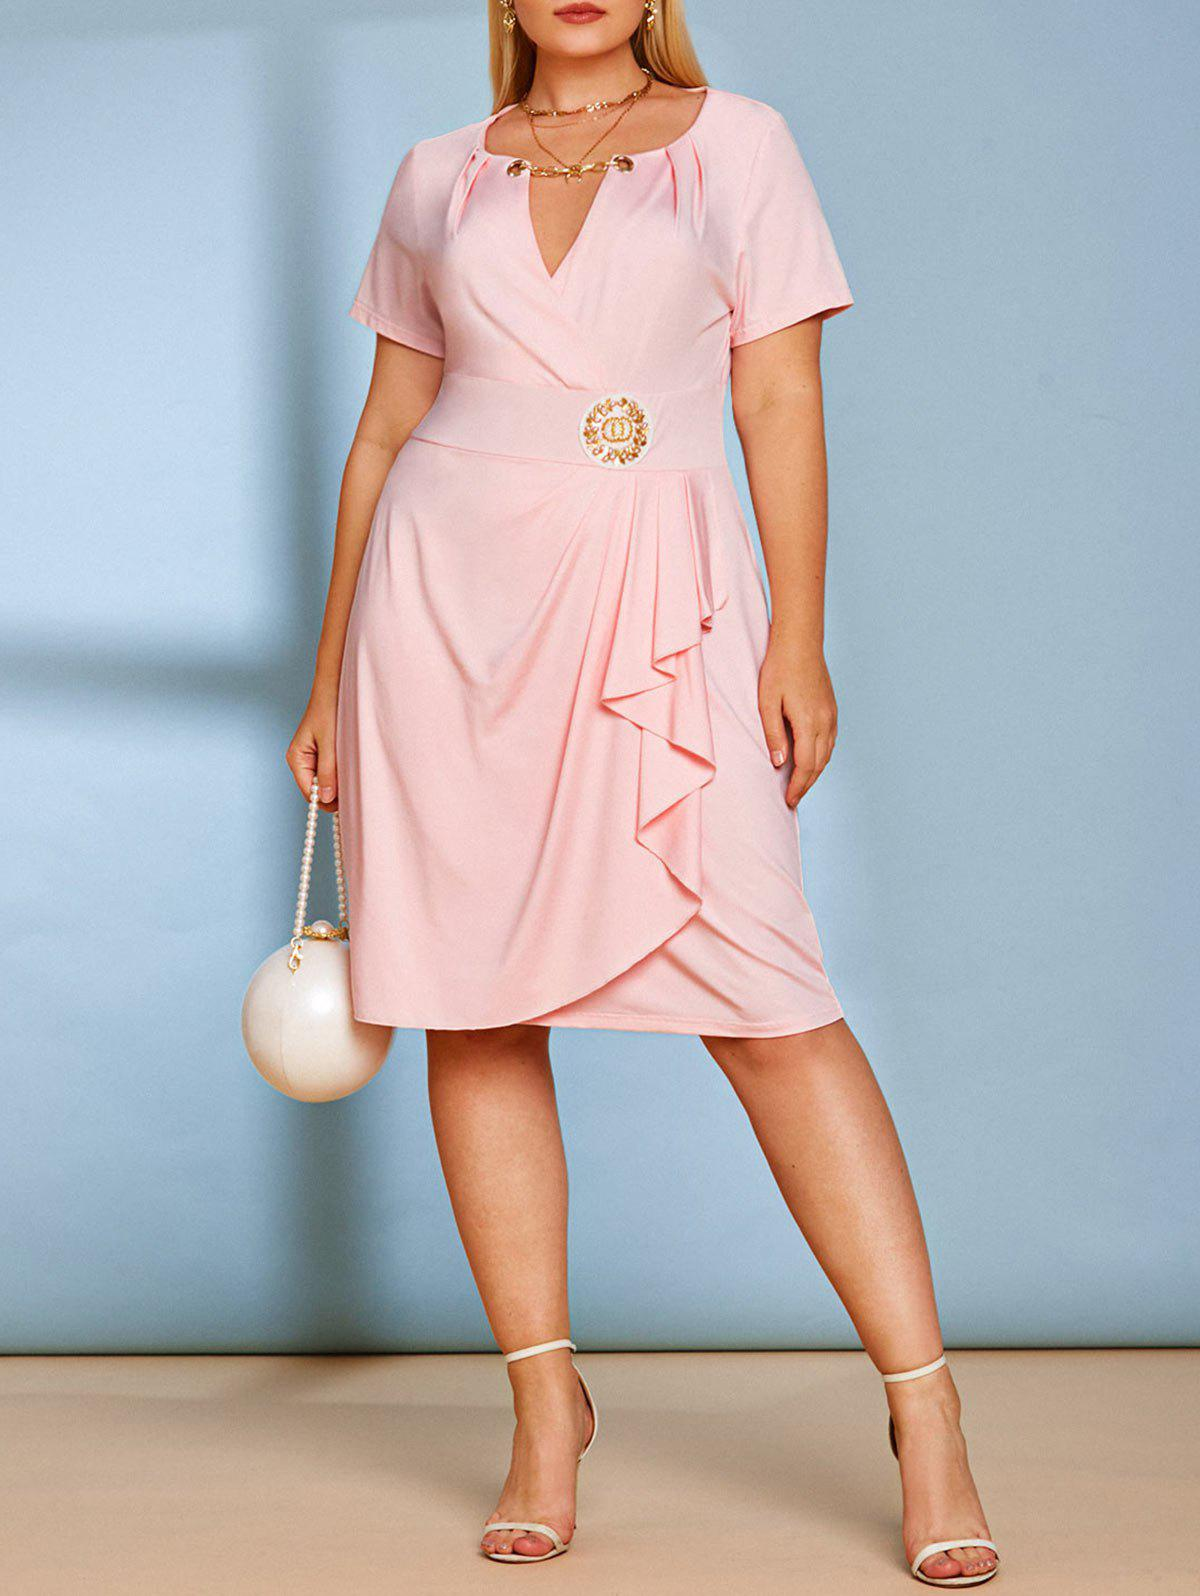 Plus Size Plunge Chains Knee Length Dress - LIGHT PINK 5X